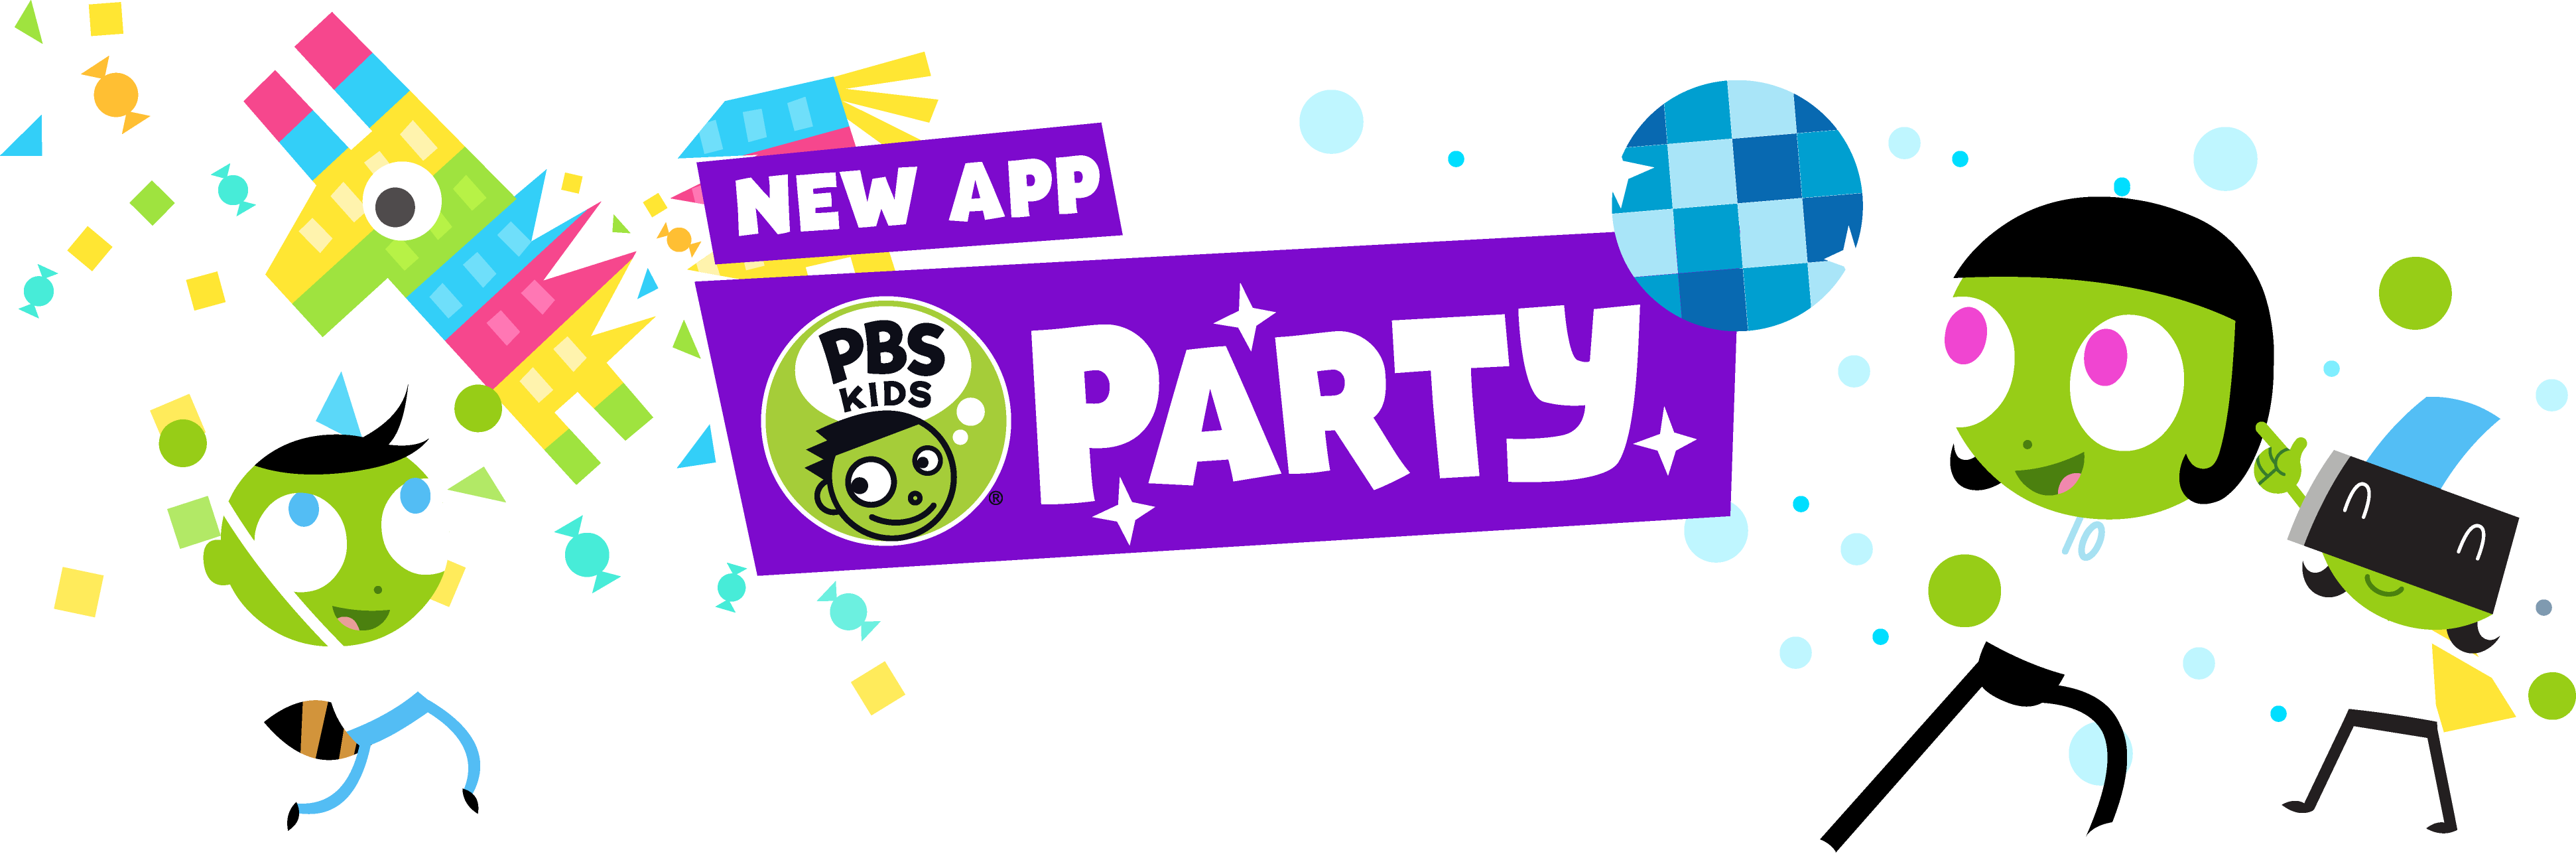 new app party download now!